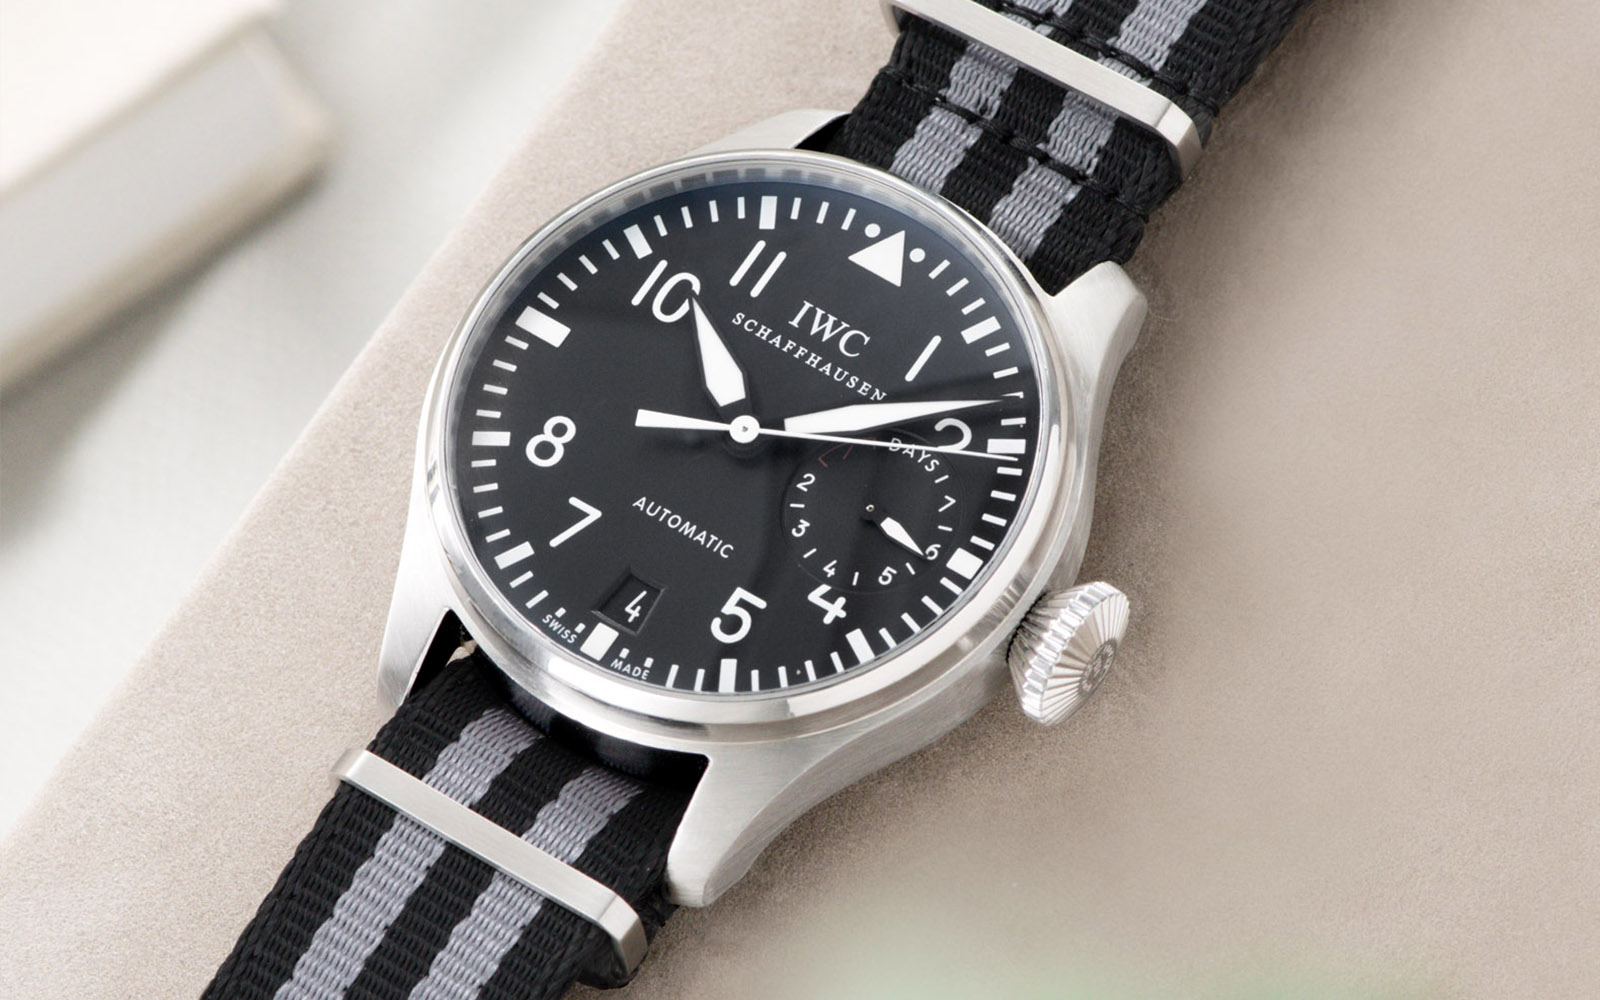 Bulang and Sons_Strap Guide_IWC Big Pilot ref IW5004_Deluxe Nylon Nato Watch Strap Black Two Stripes_Banner